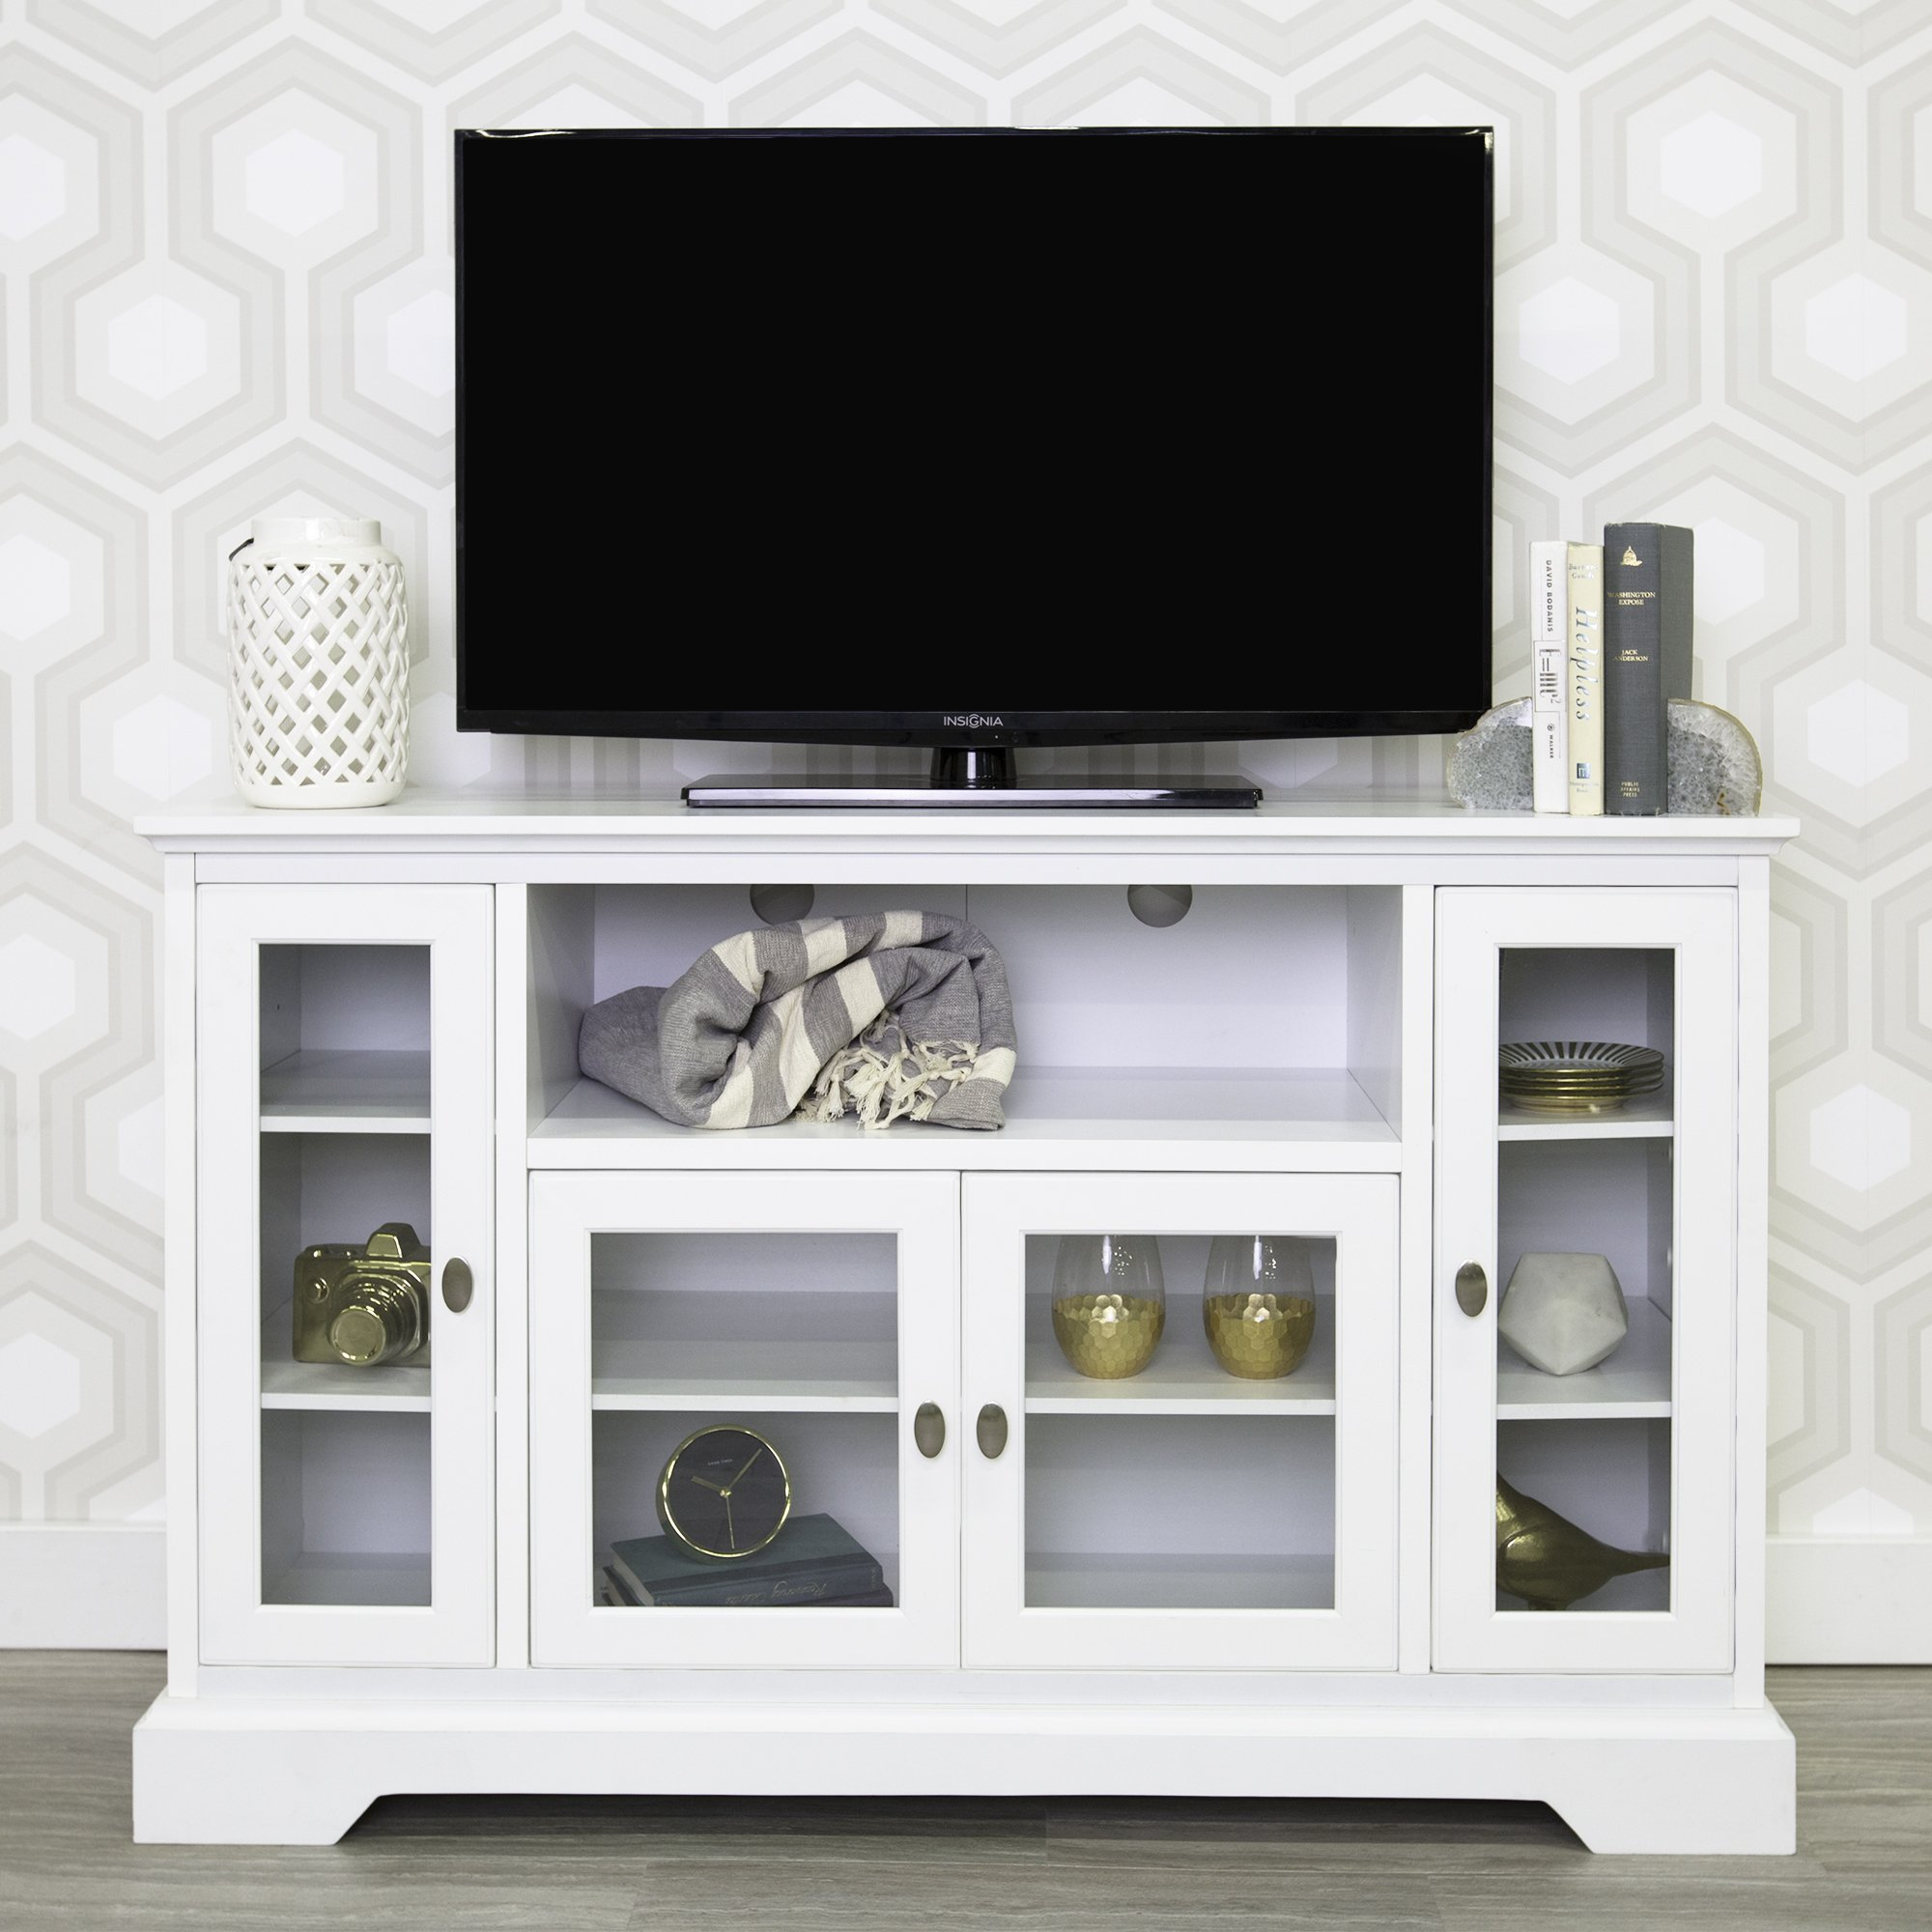 WE Furniture 52'' Wood Highboy Style Tall TV Stand - White by WE Furniture